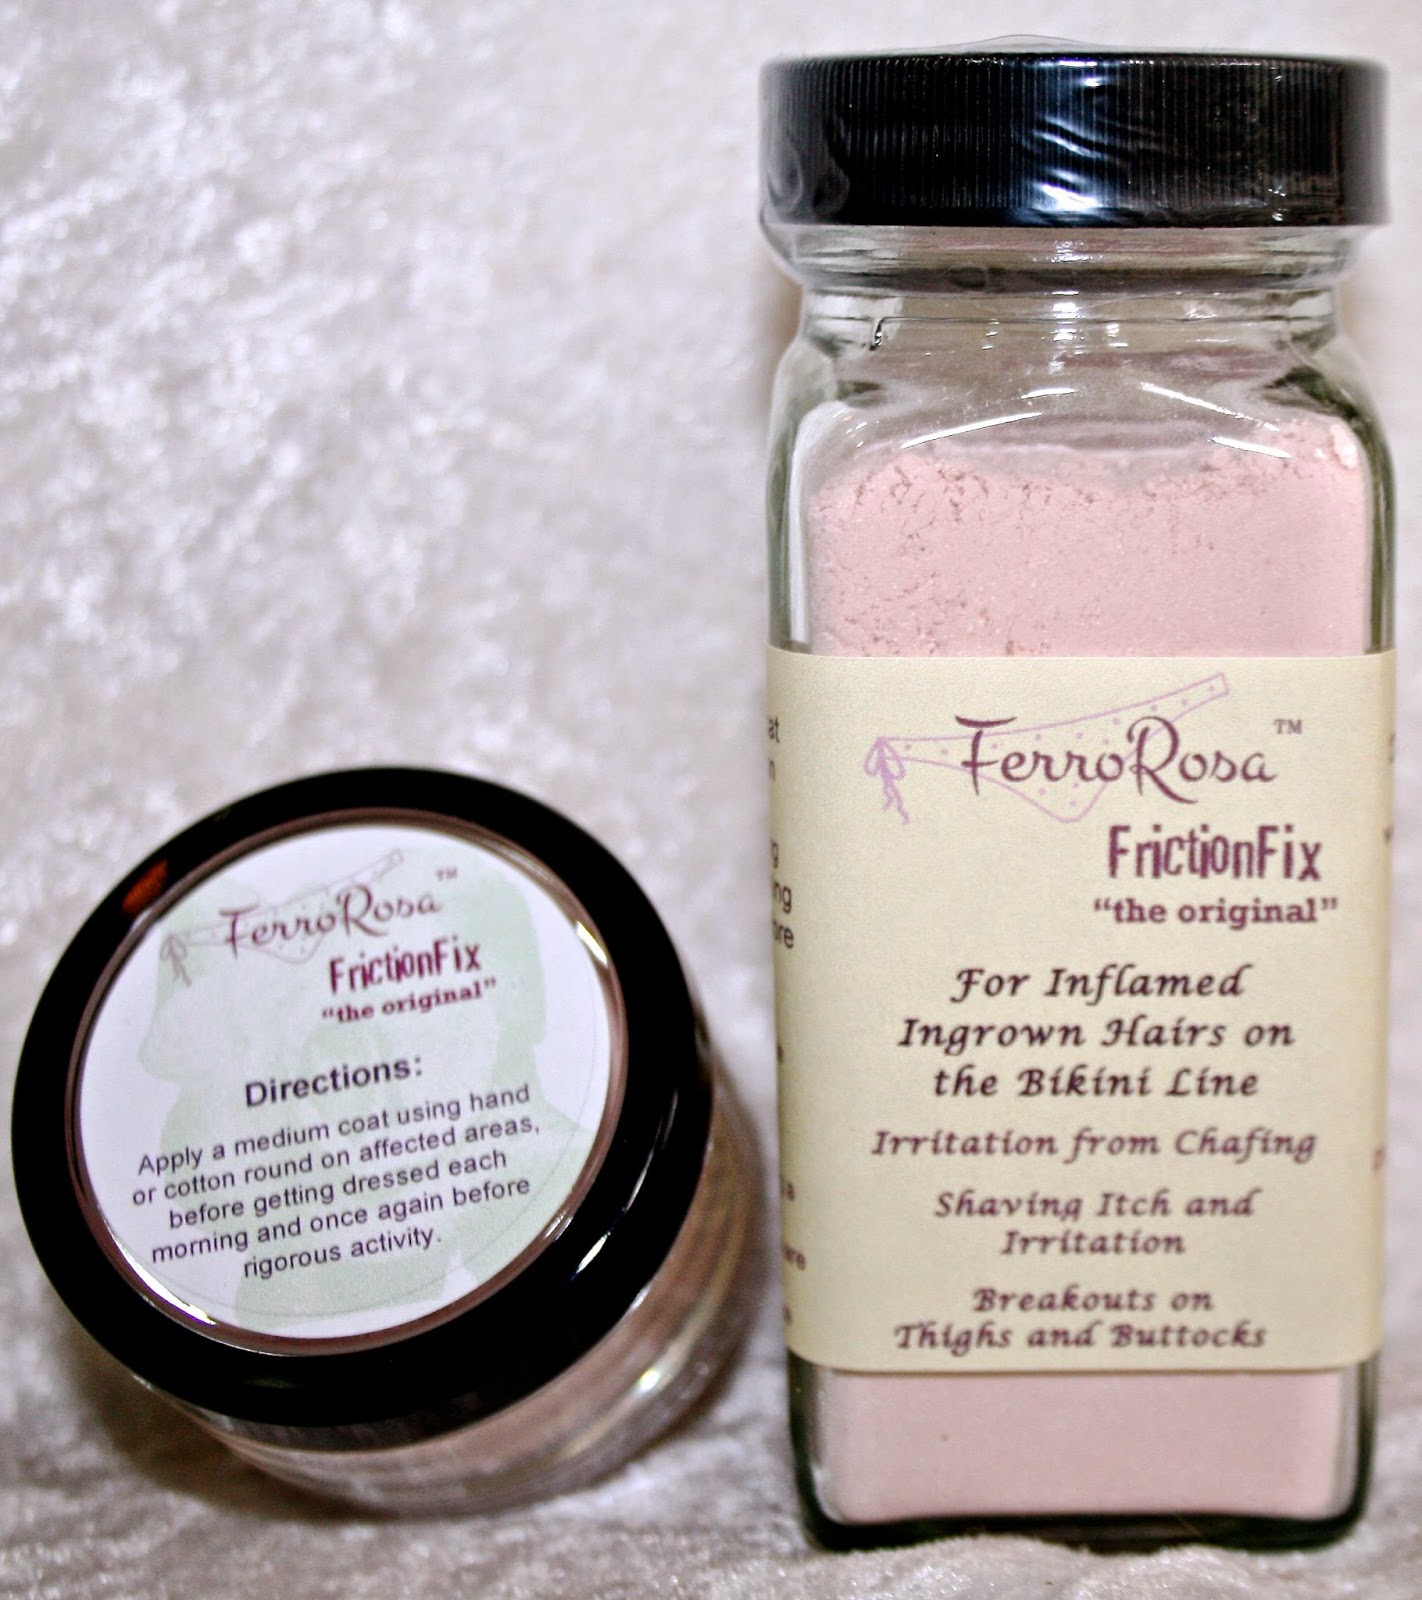 FerroRosa FrictionFix for ingrown hairs and body breakouts.